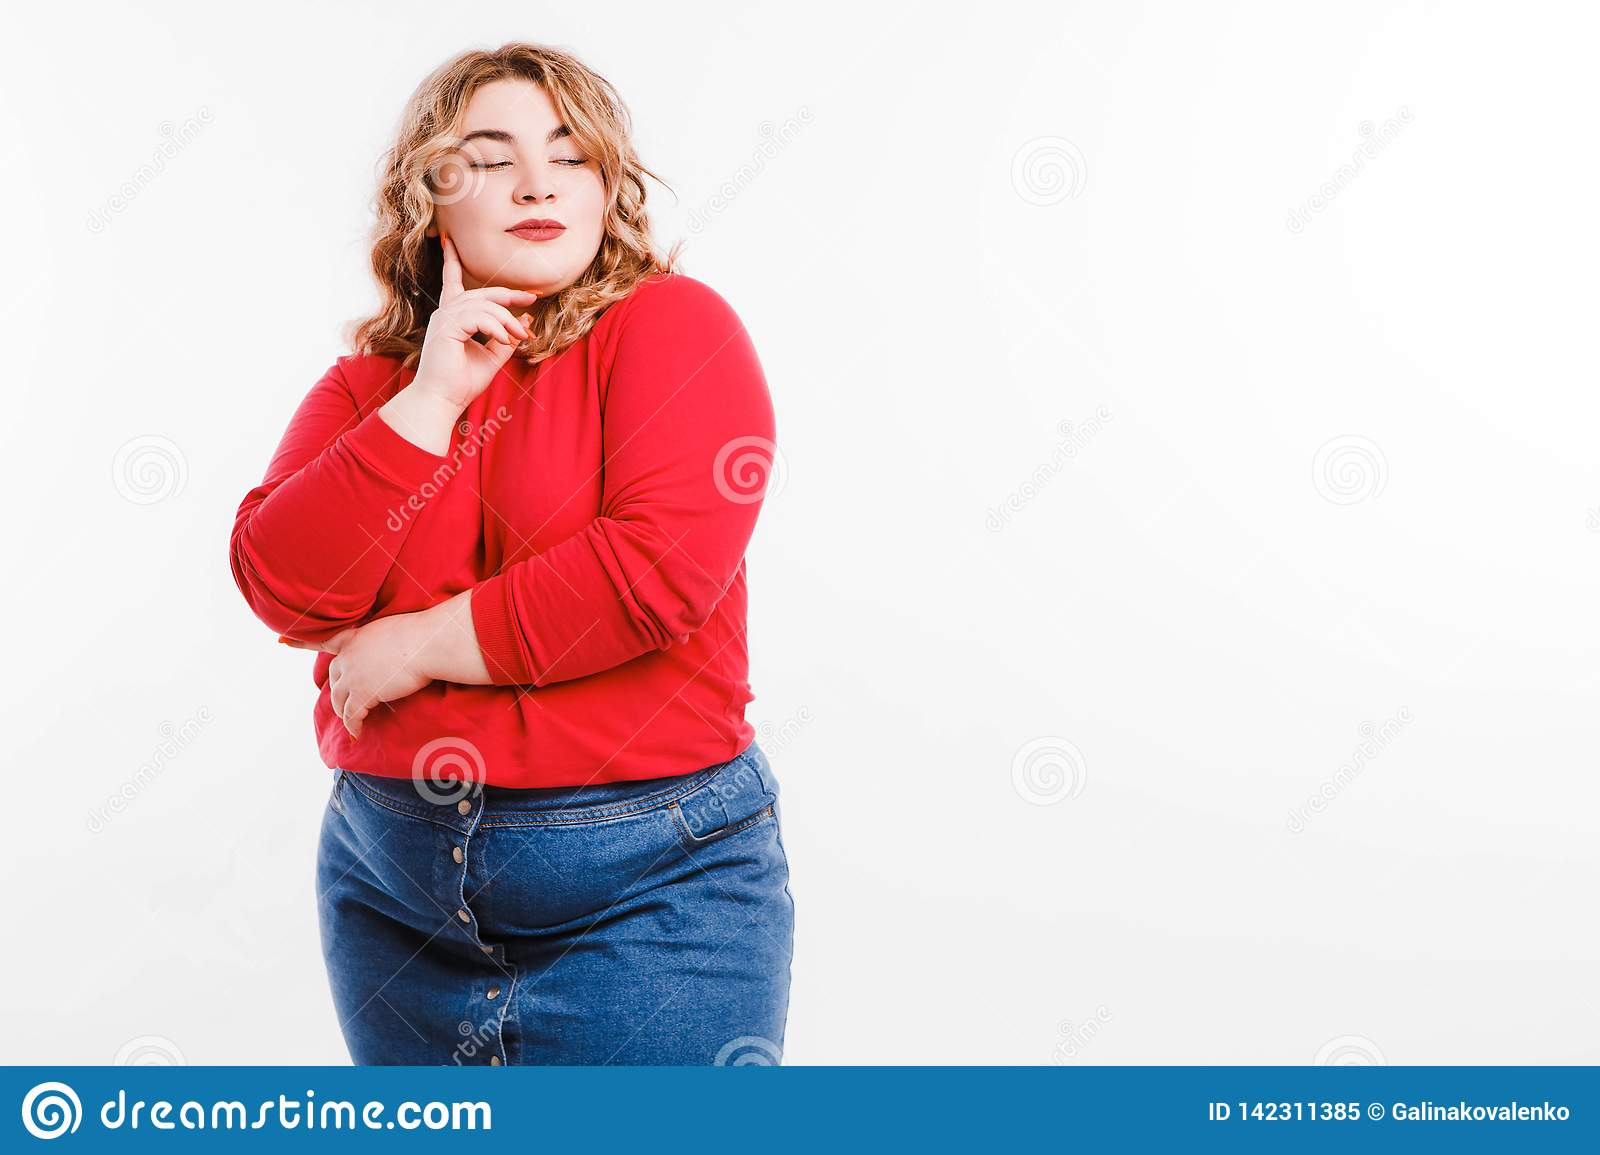 Beautiful fat young woman with bright emotions on a light gray background. Concept of diet. Space for text.